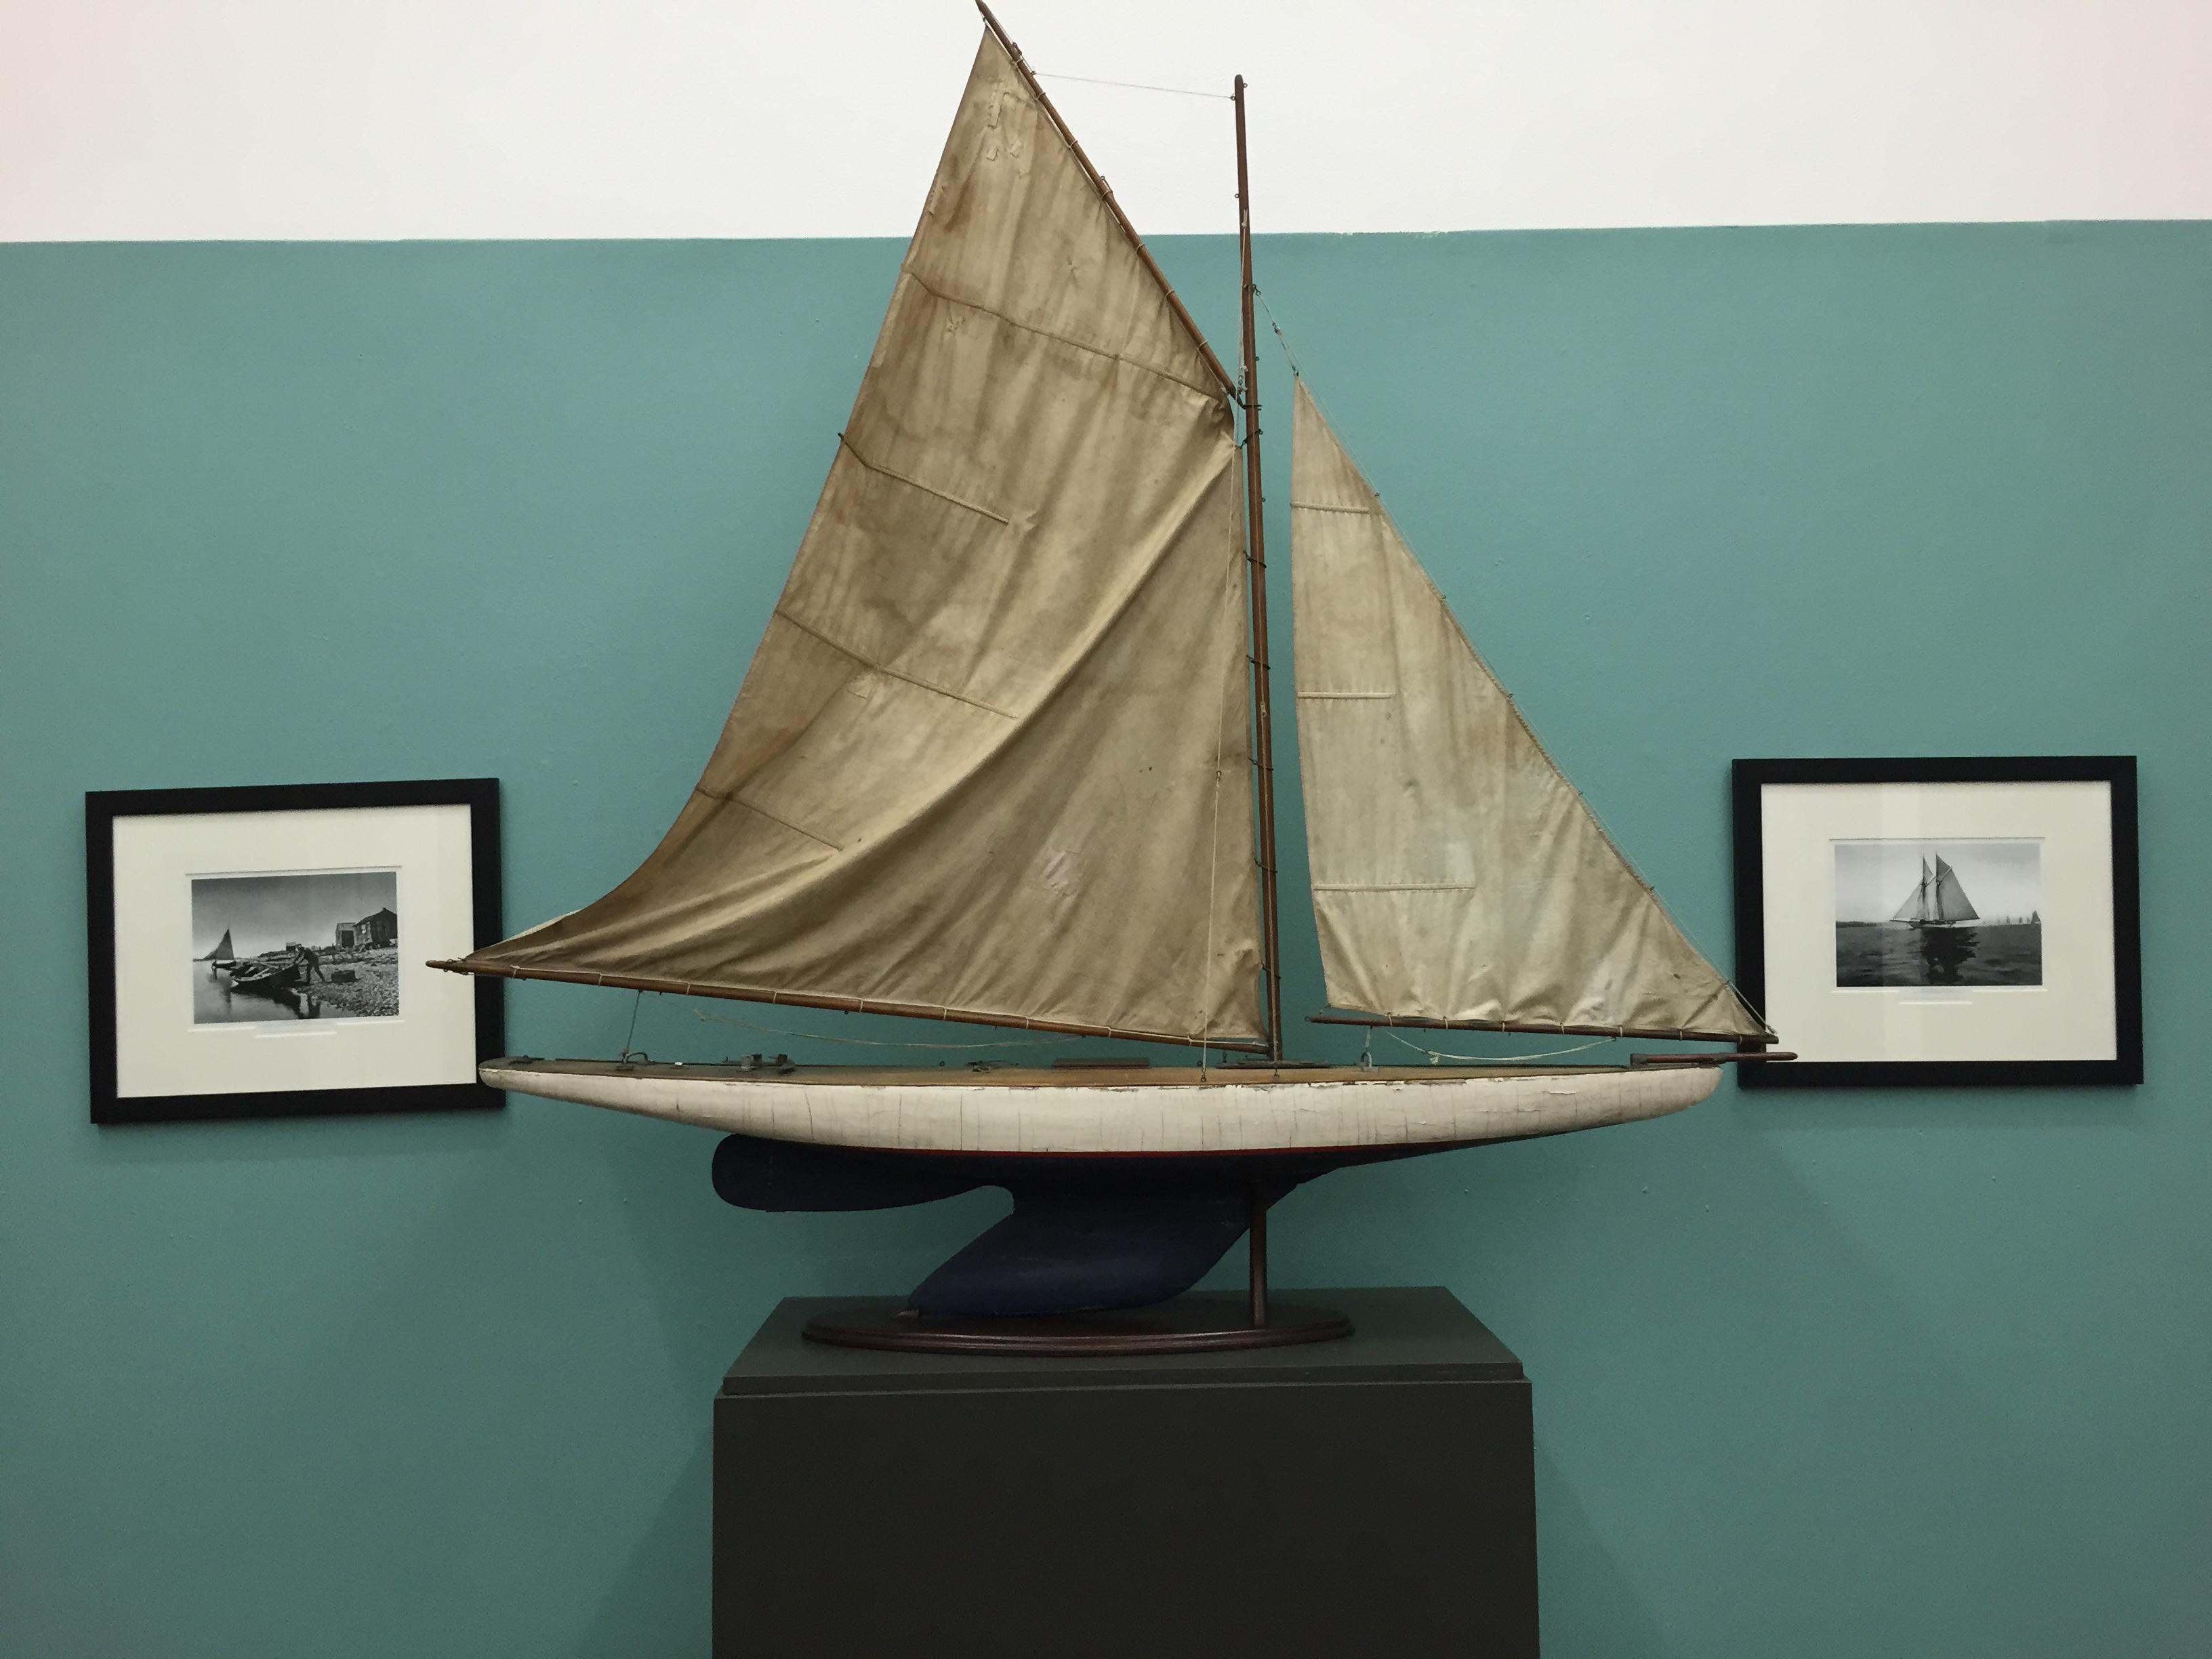 Dingies and lakeboats are on display at the Suffolk County Historical Society Museum